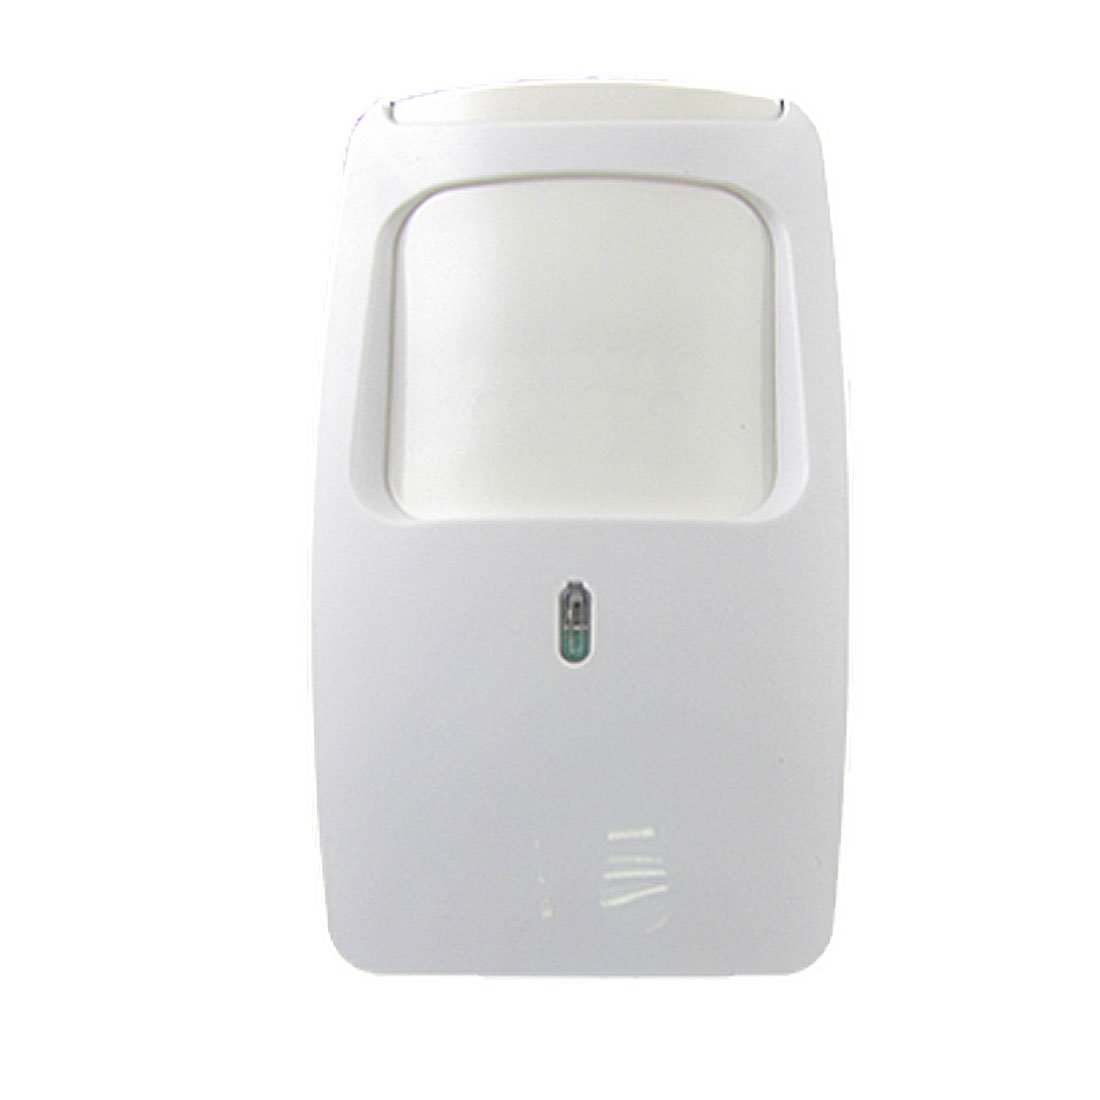 51rYkpECLeL._SL1100_ sourcingmap� led indicator pet immunity pir alarm sensor motion honeywell is312b wiring diagram at gsmportal.co